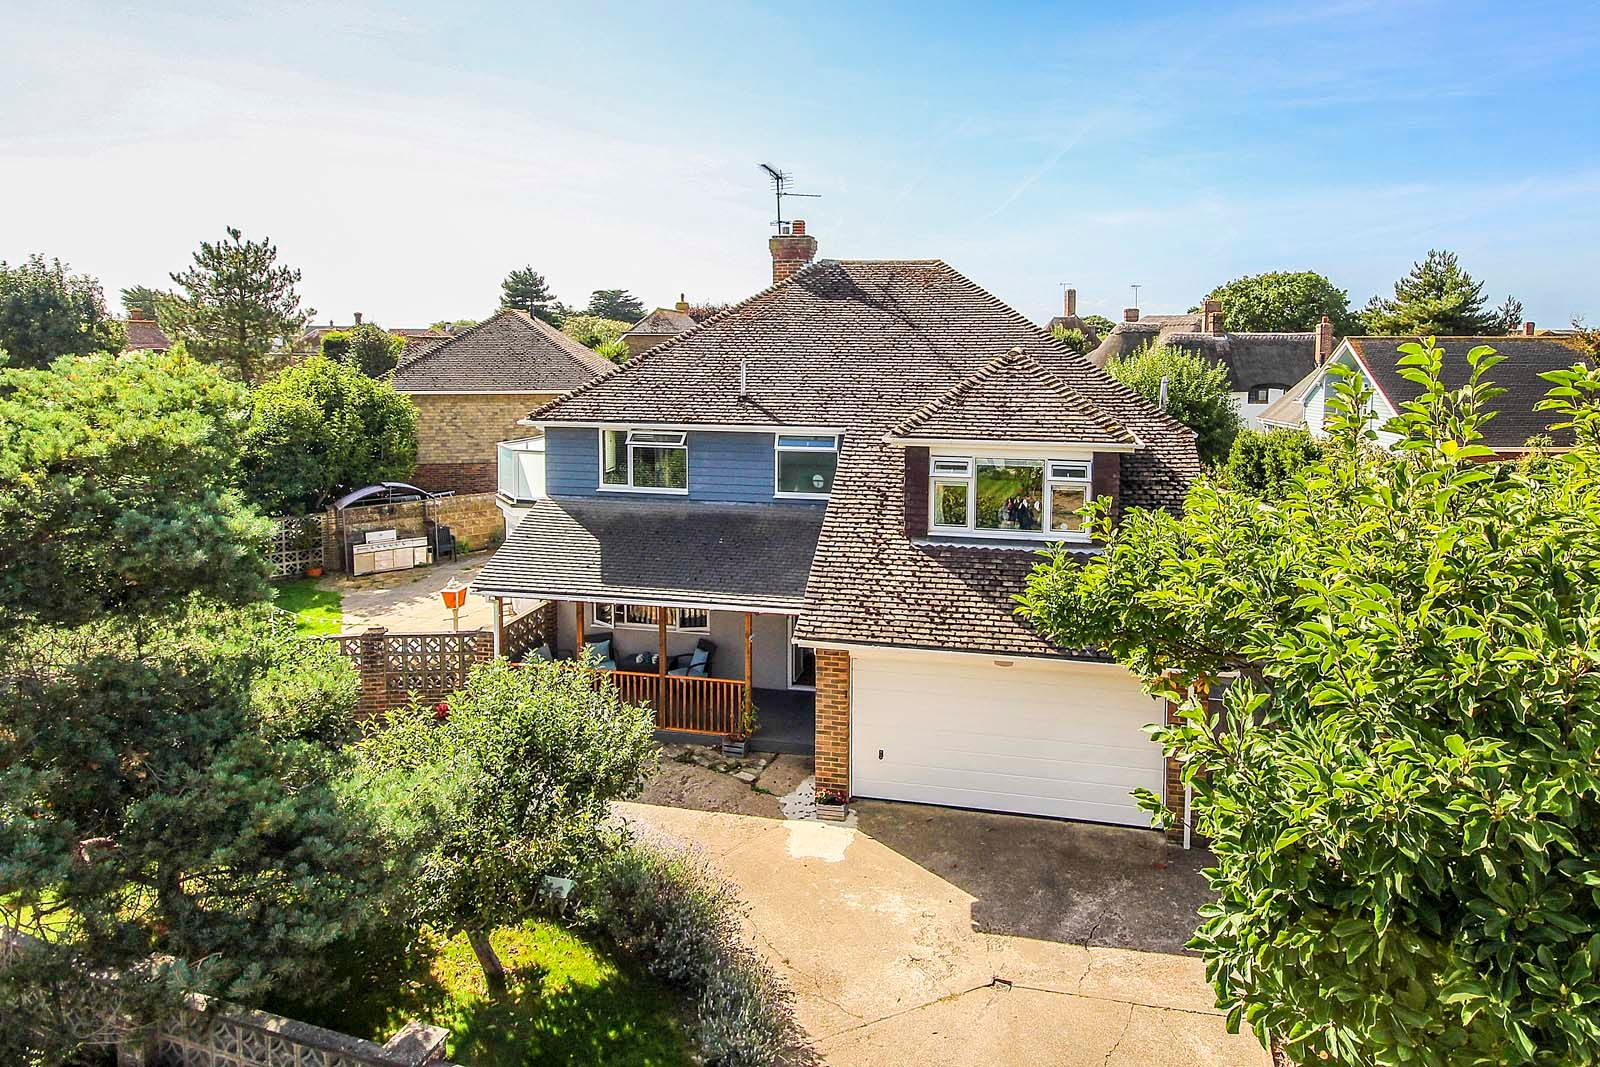 4 bed house for sale in The Roundway - Property Image 1